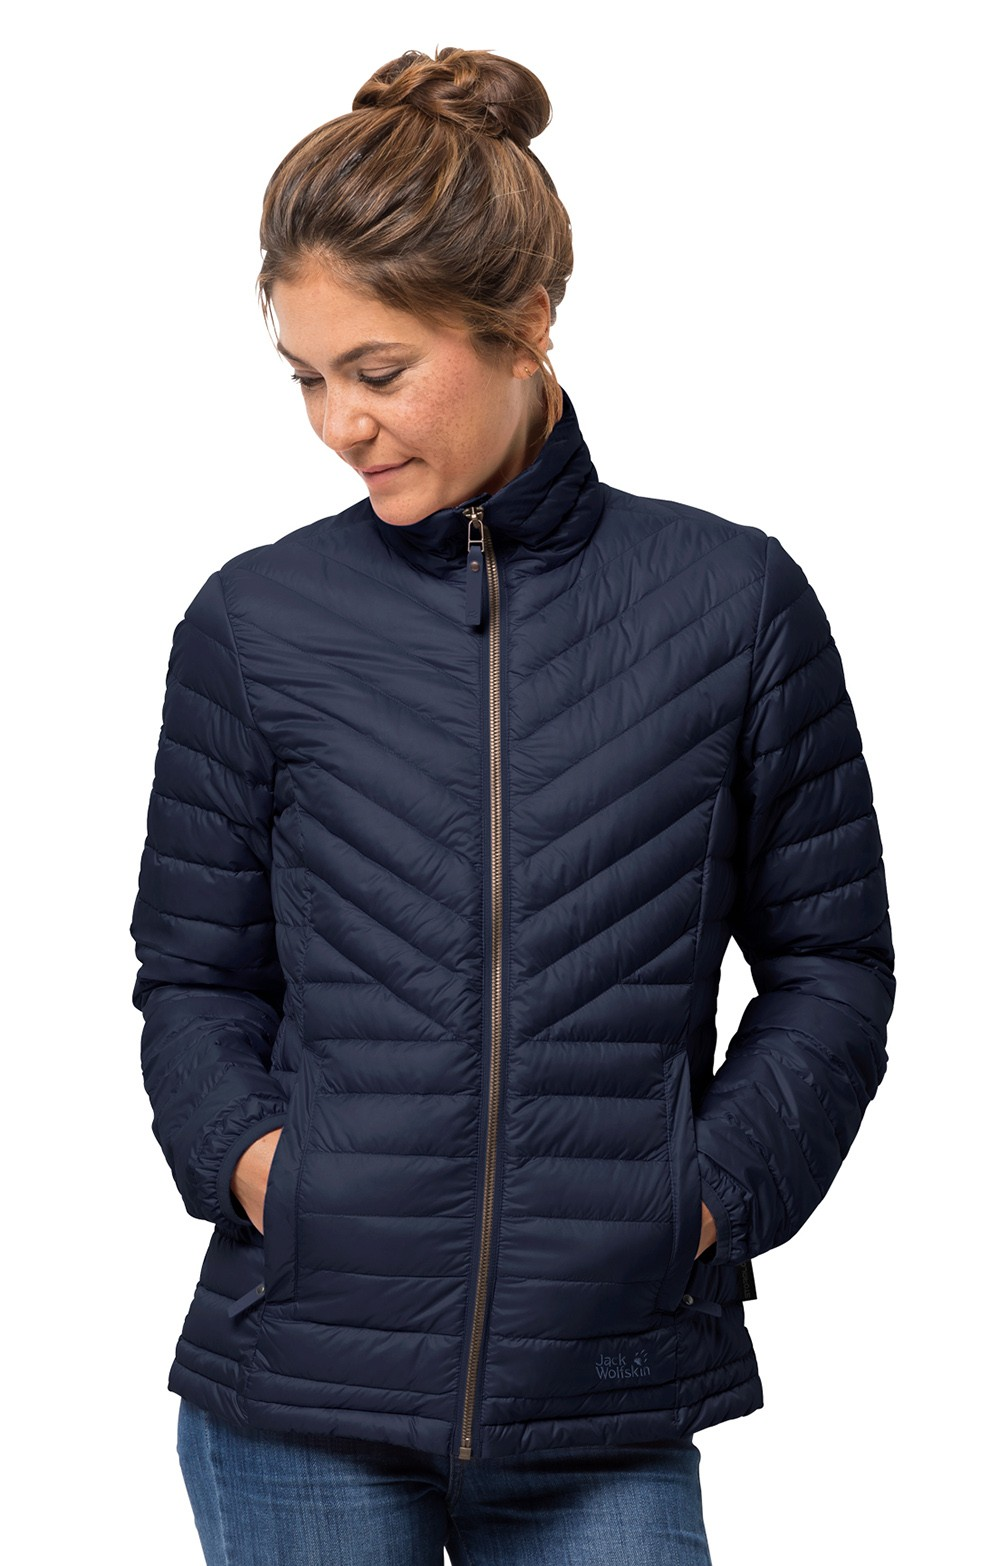 7ab41b2ffe8 Ladies Jack Wolfskin Vista Jacket - House of Bruar